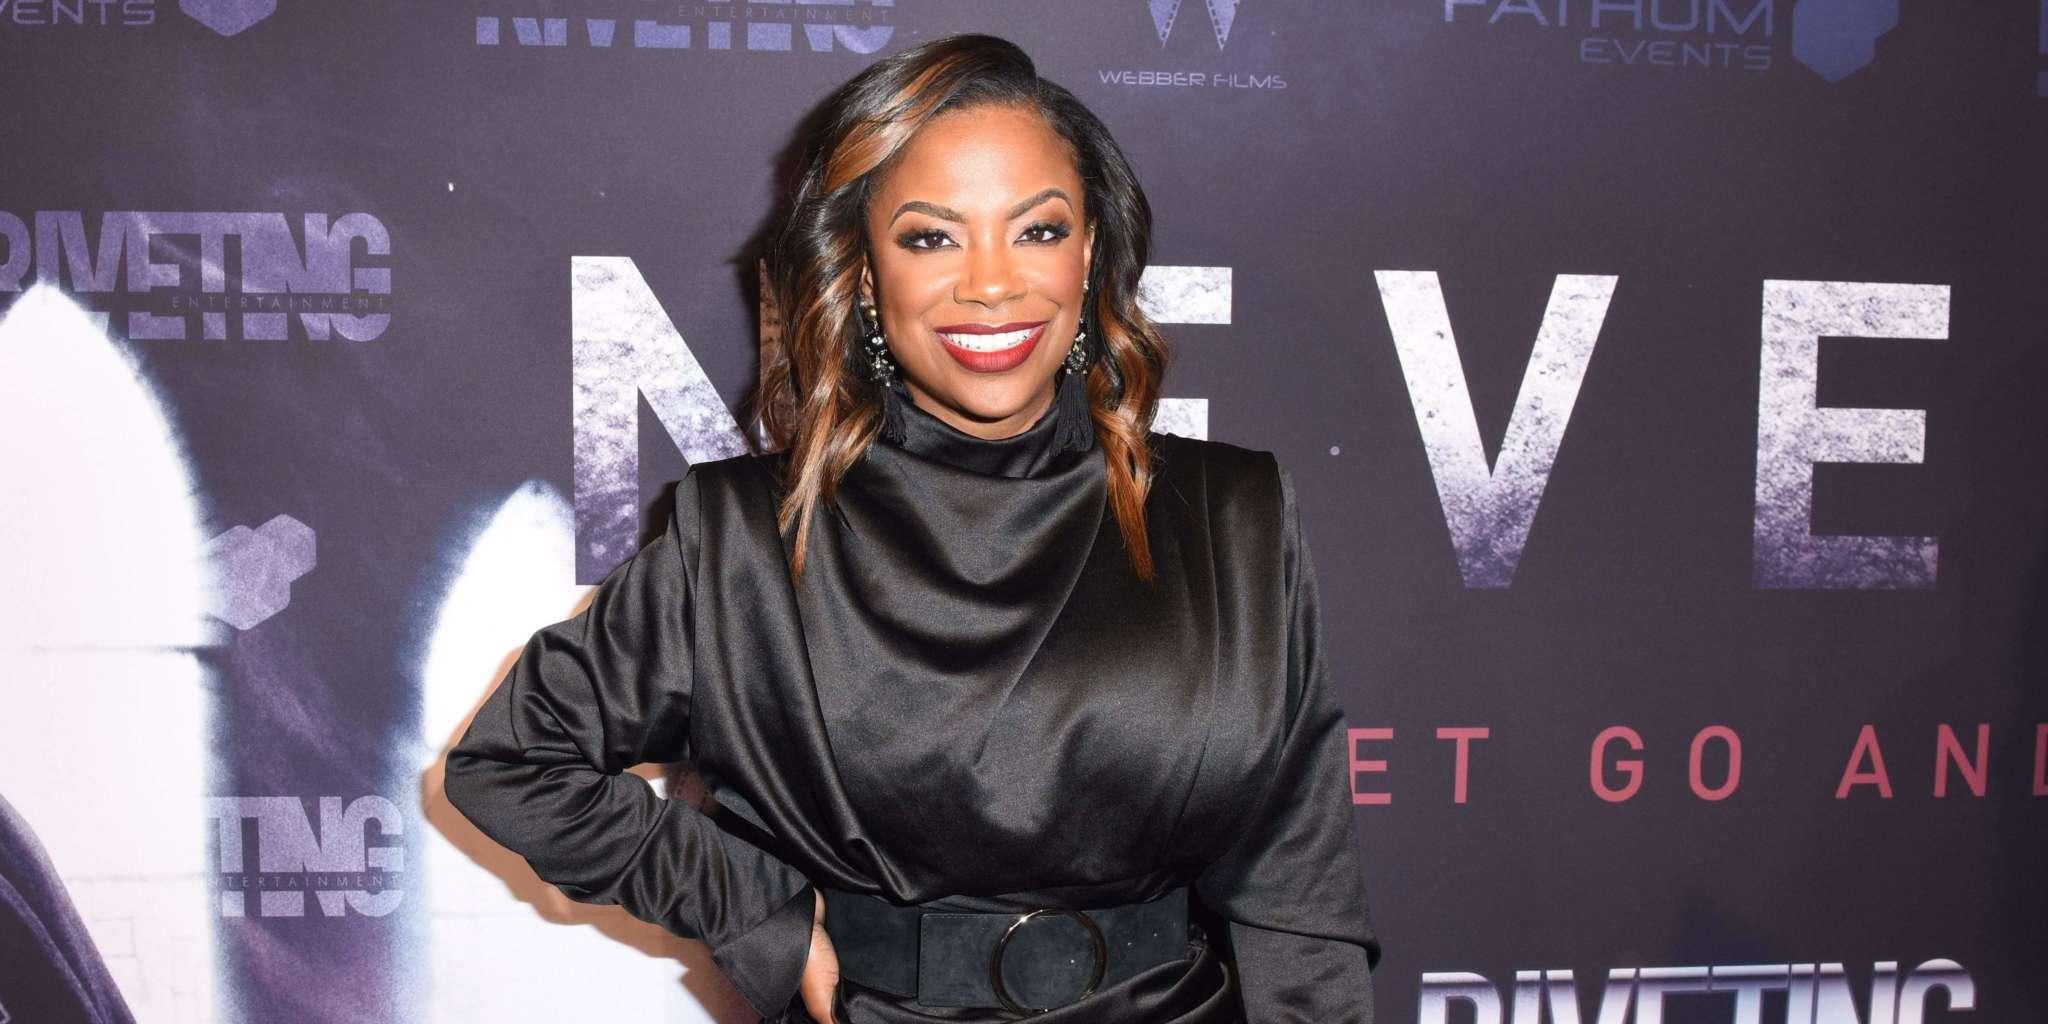 Kandi Burruss' Latest Invitation For Her Fans To Watch 'When They See Us' Triggers Intense Emotions Among Fans